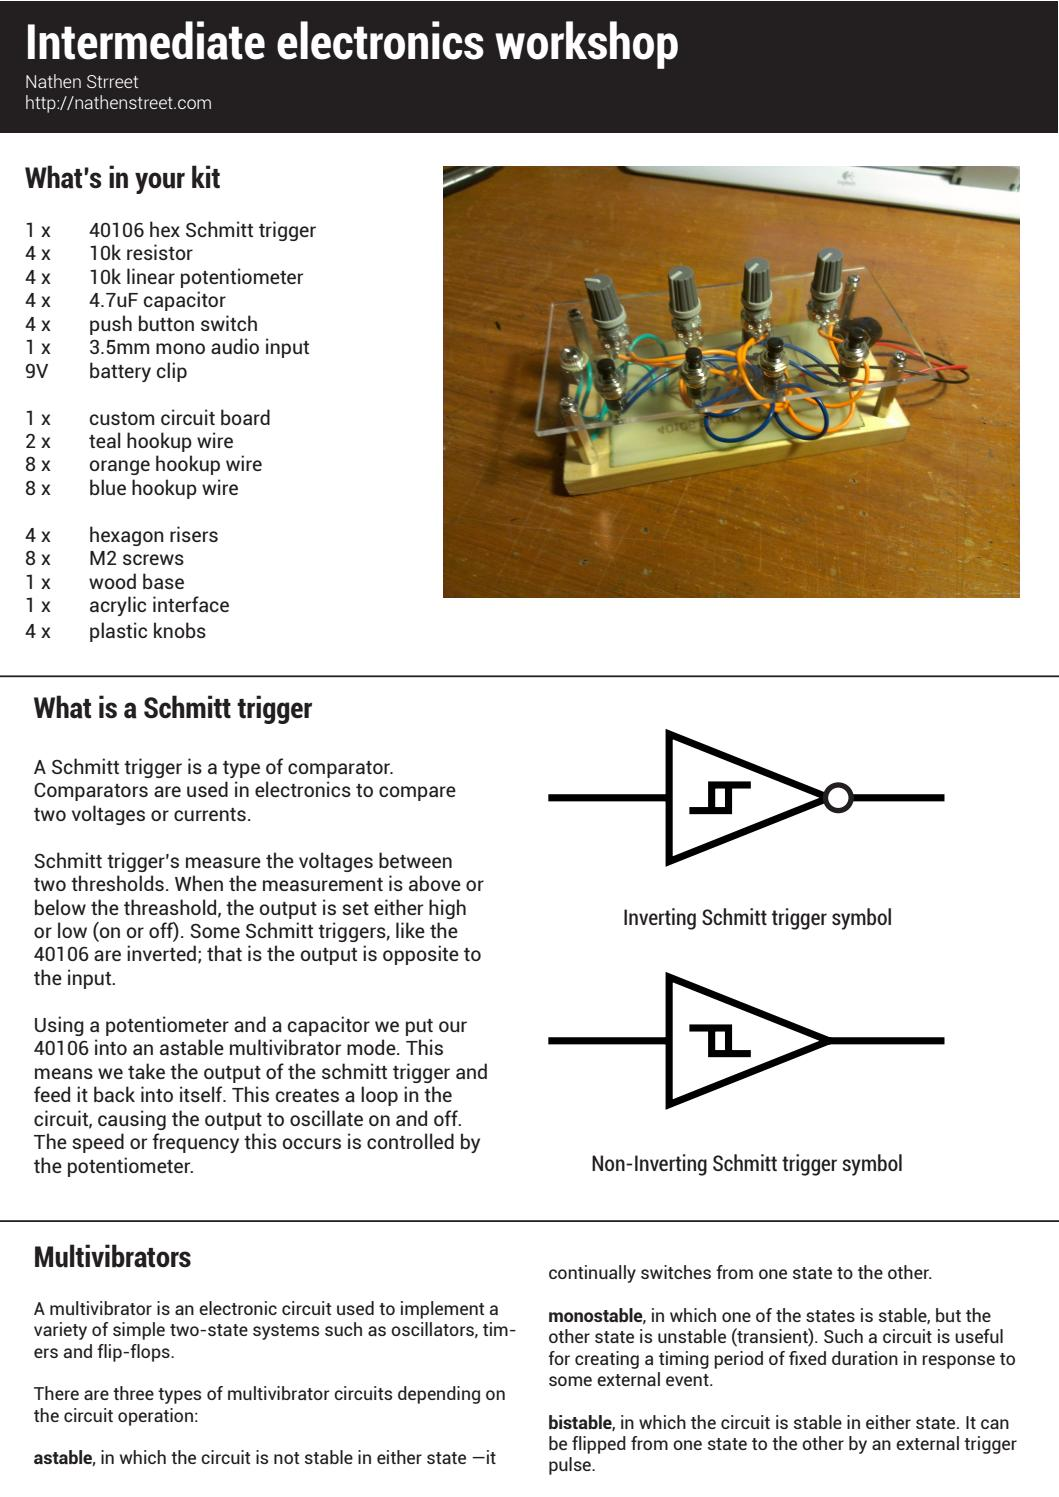 40106 Hex Schmitt Trigger Synthesizer By Nathenstreet Issuu Monostable Means That Once The Circuit Is Switched On It Will Time